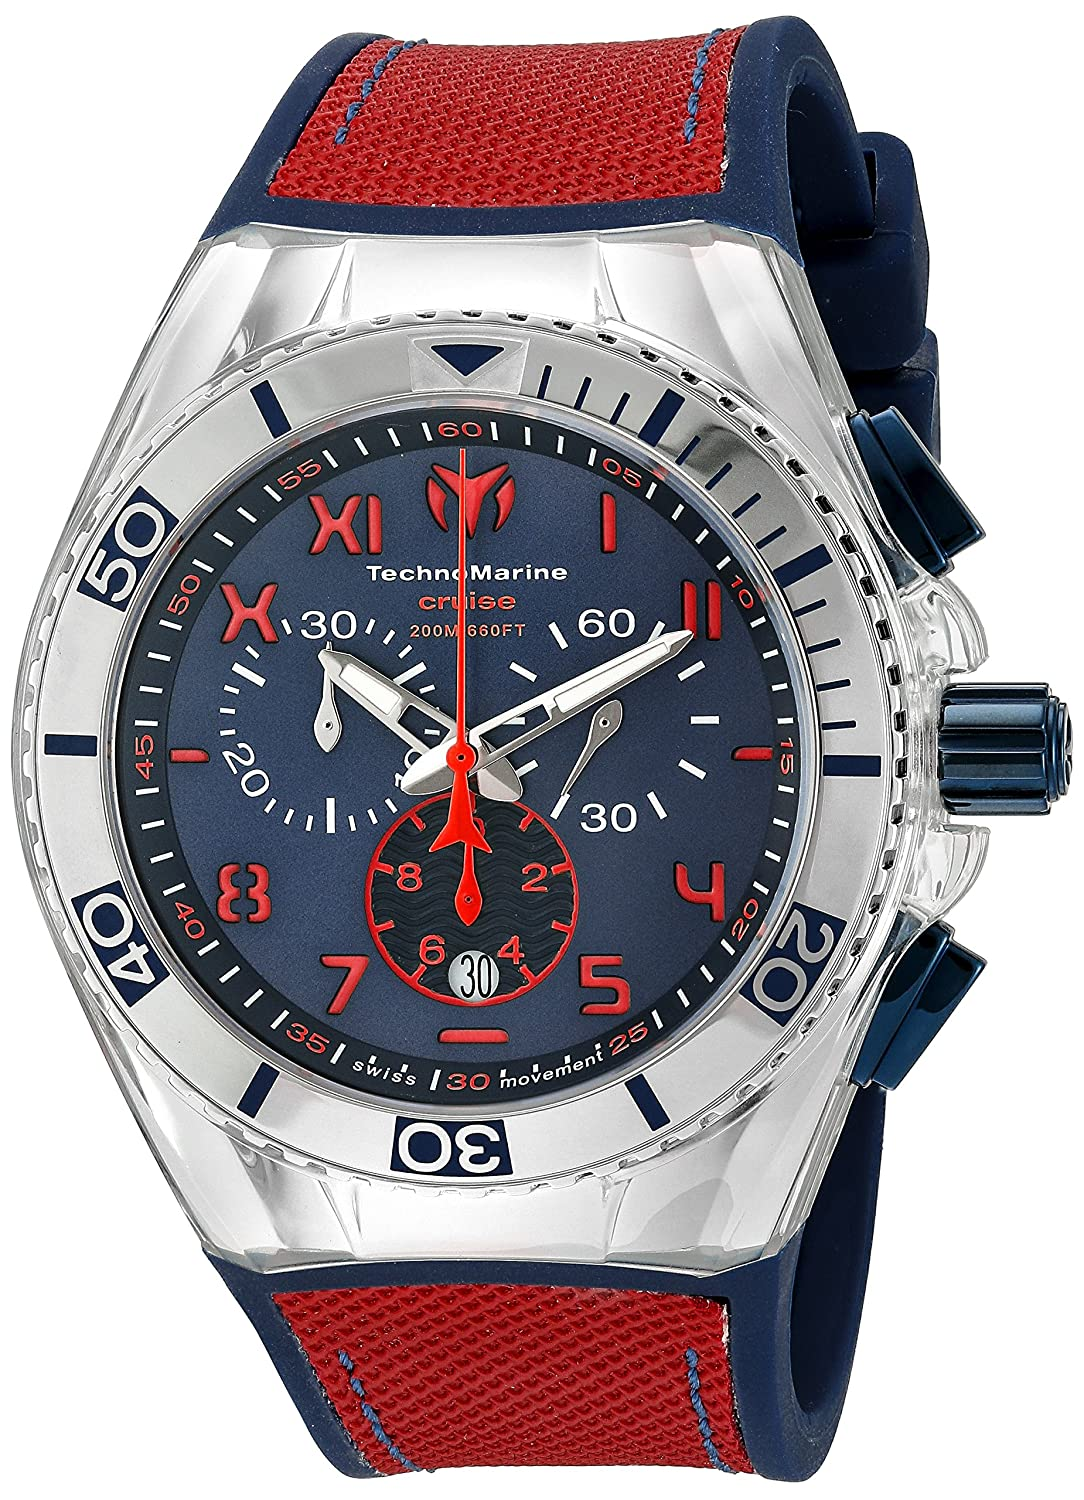 watches designer tmarine cruise stellar abbott watch technomarine chrono lyon shade magnum station